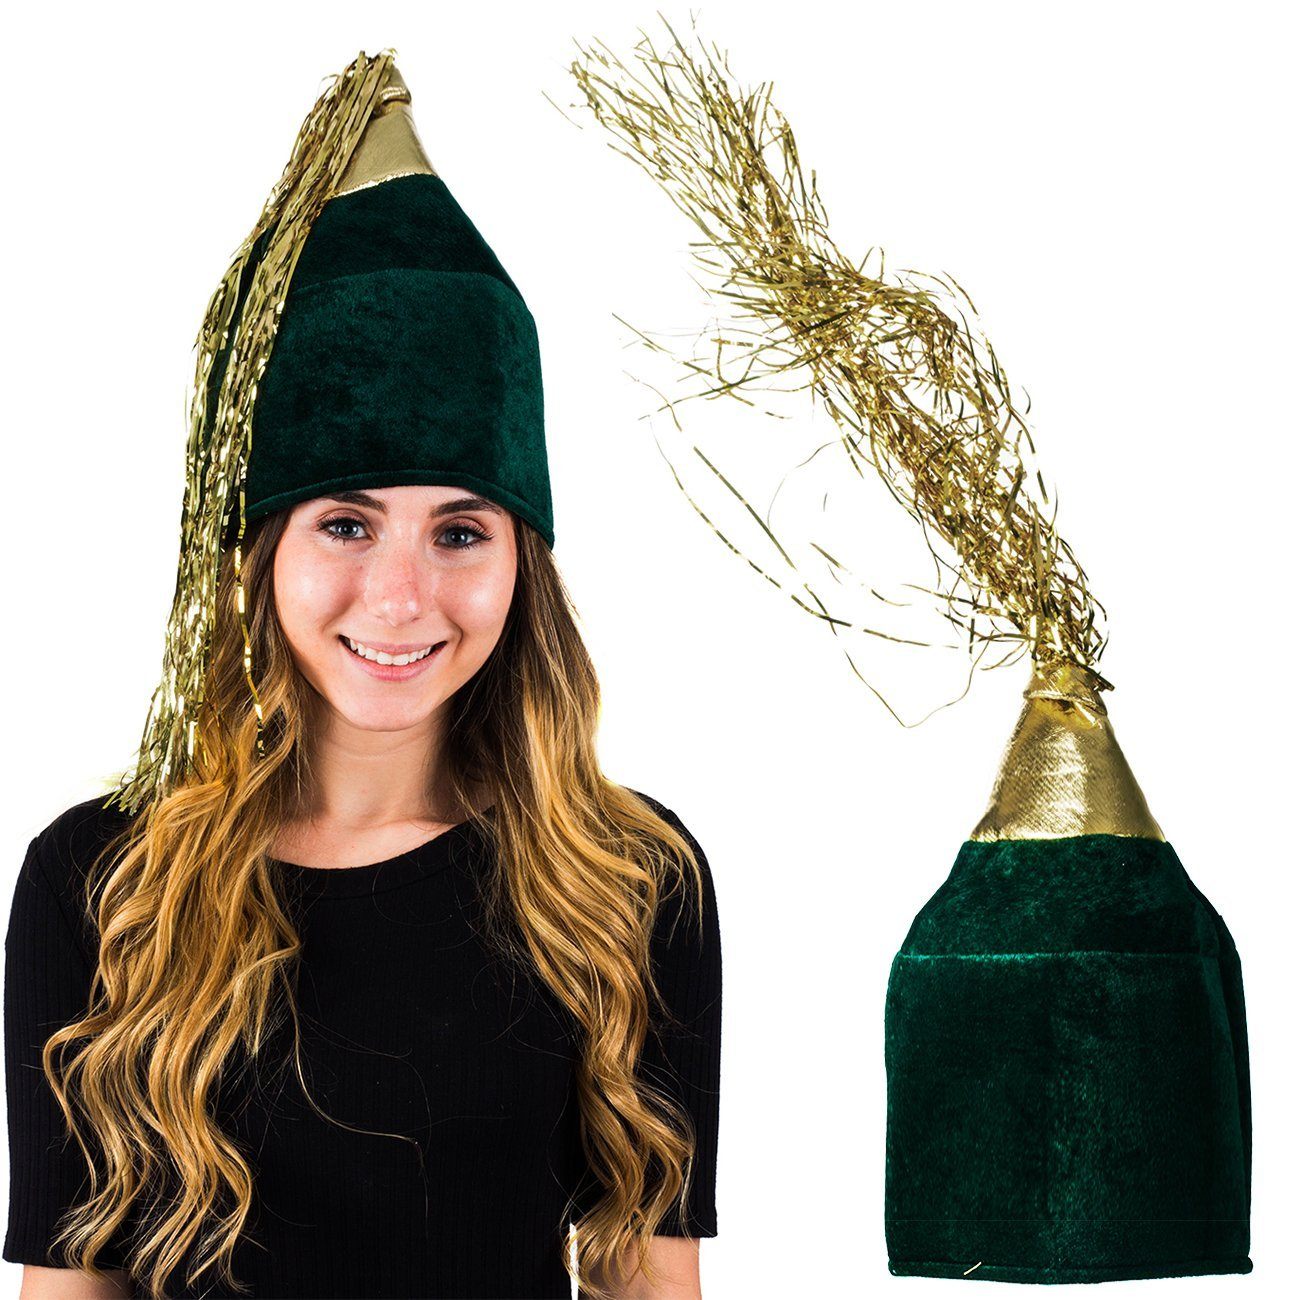 13344e86242 ... Dress Up by Tigerdoe 10.99. Champagne Bottle Costume Hat- Bottle Head  Hat - Costume Hats - Champagne Bottle Costume by